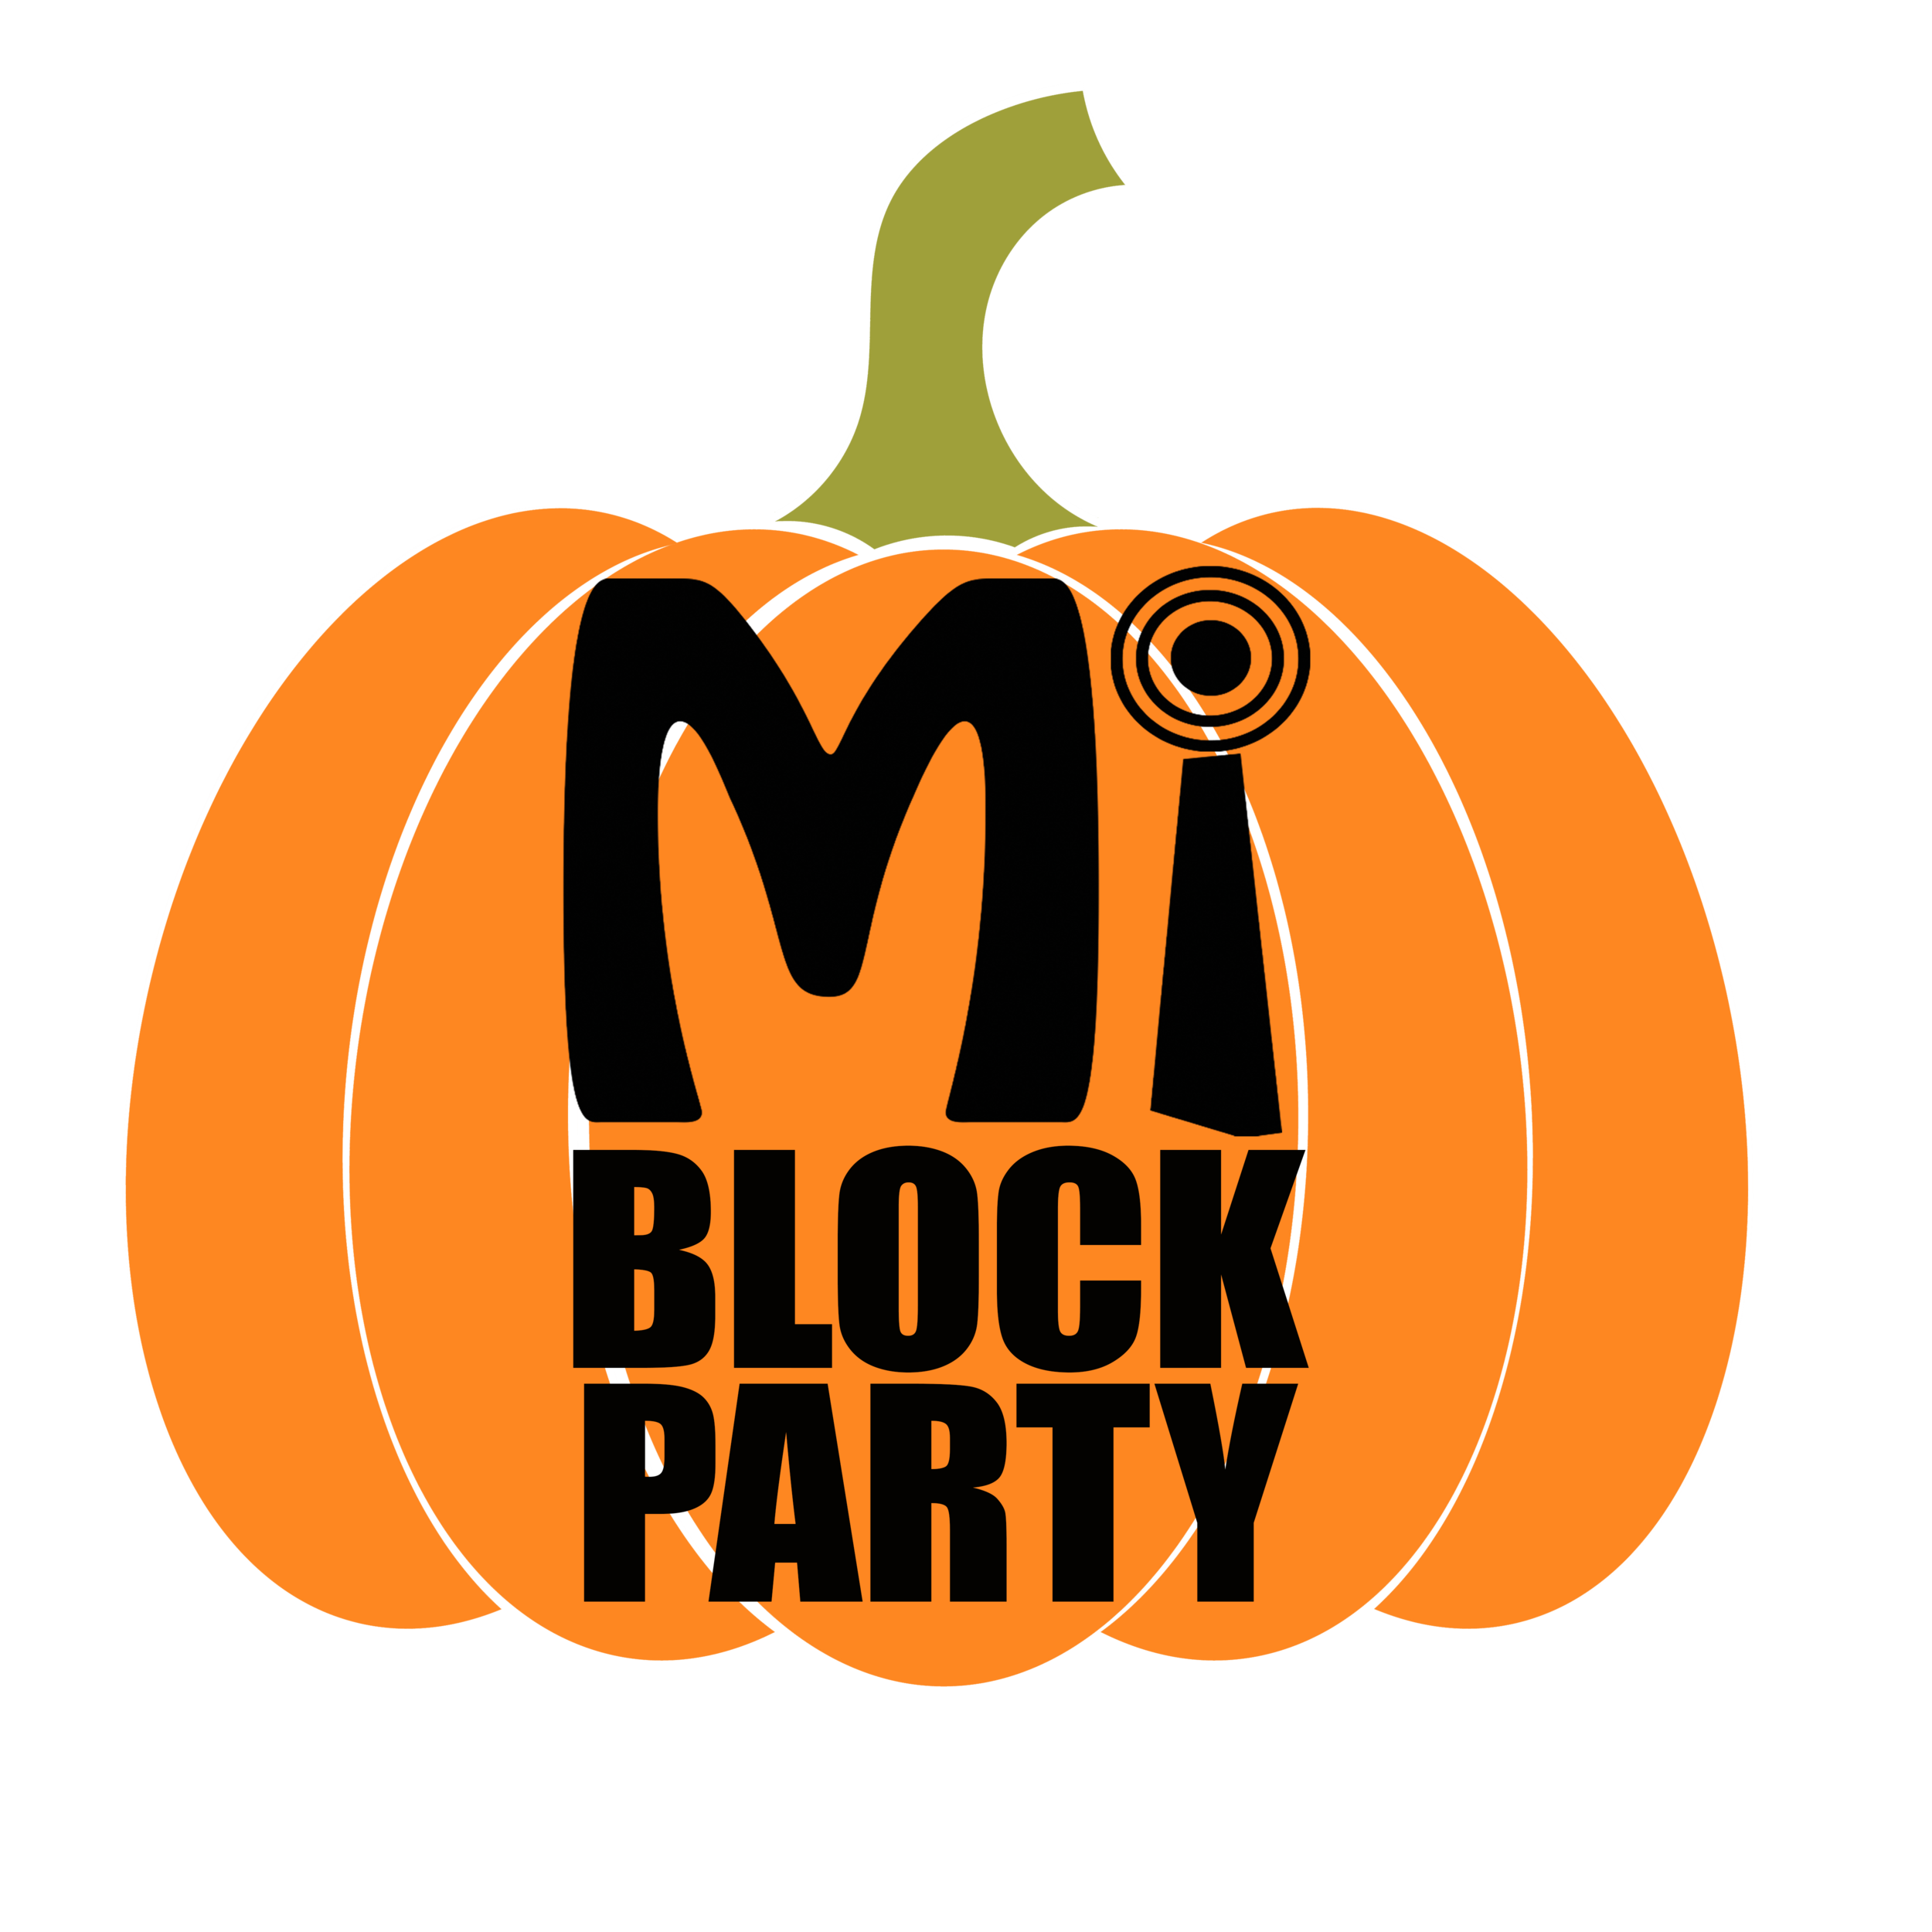 Hanging pumpkin contest banner clipart clipart freeuse stock Upcoming Events — MiChurch clipart freeuse stock